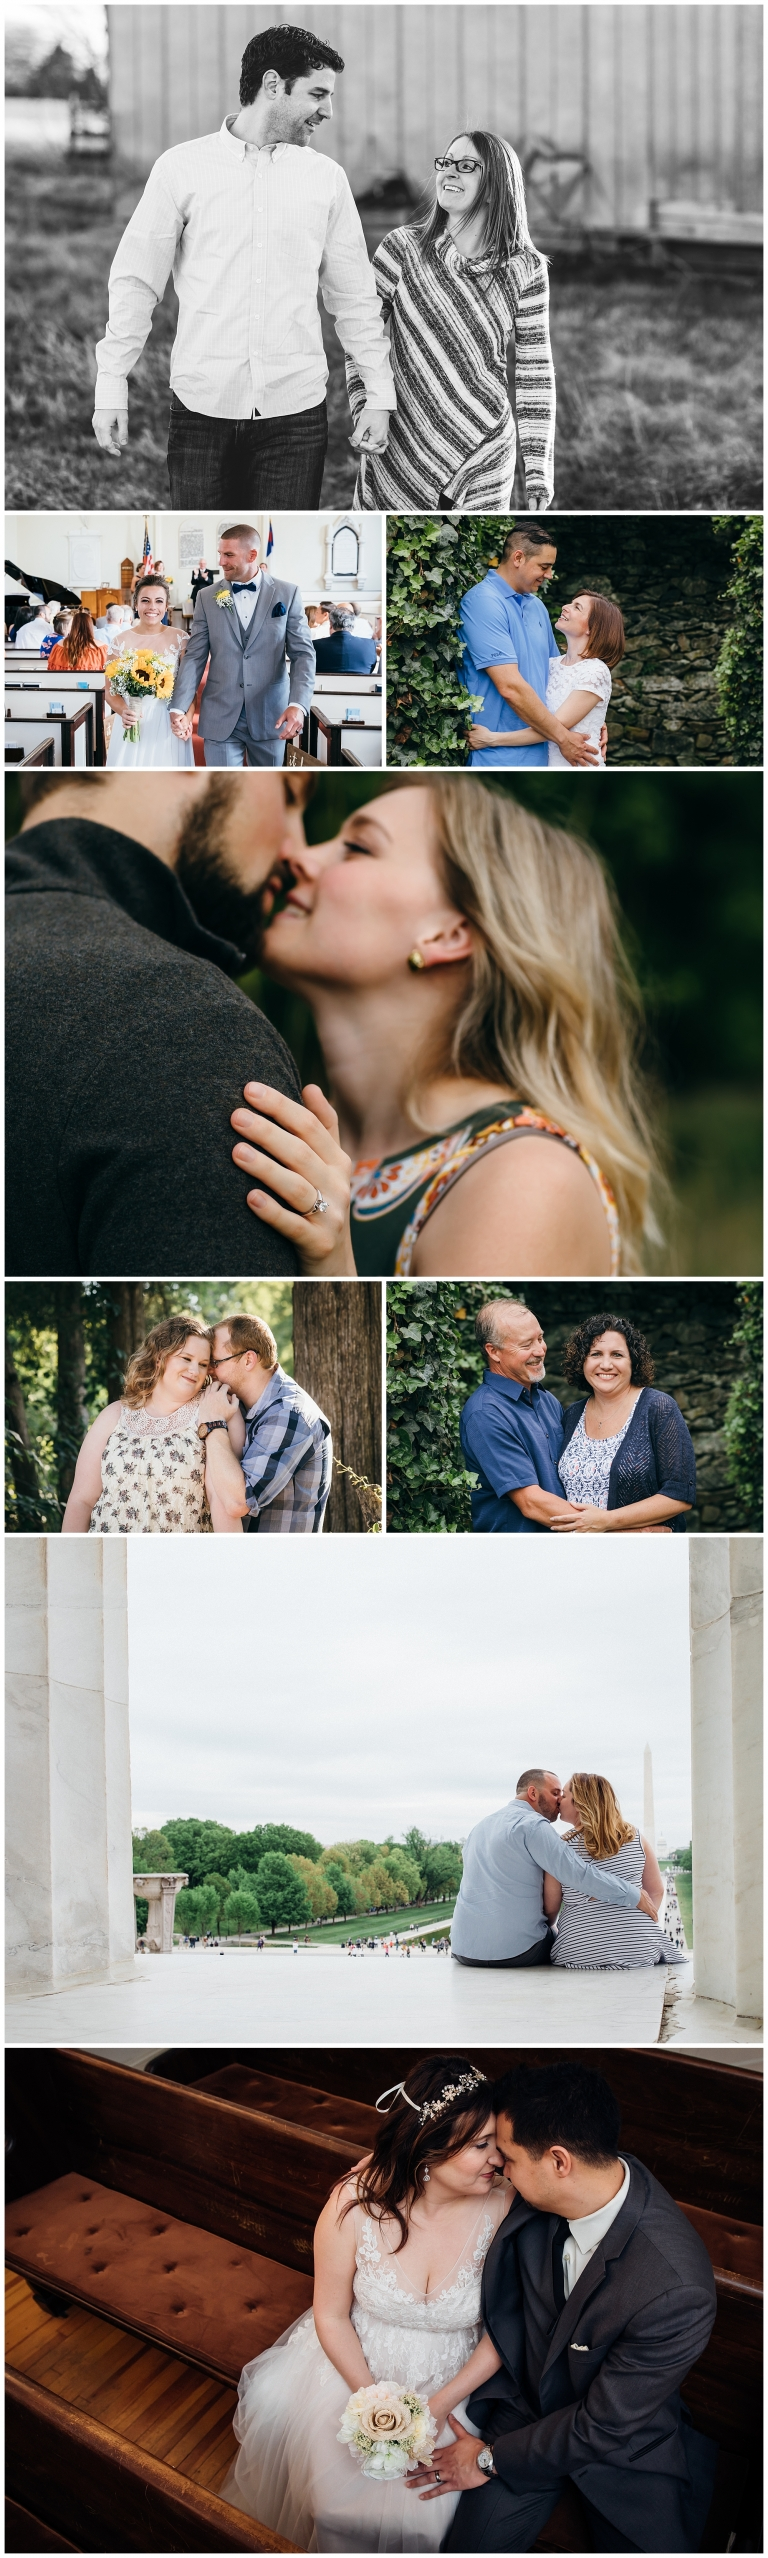 Collection of Best images from Premier Couples Photographer in Northern Virginia, Prince William and Fairfax County